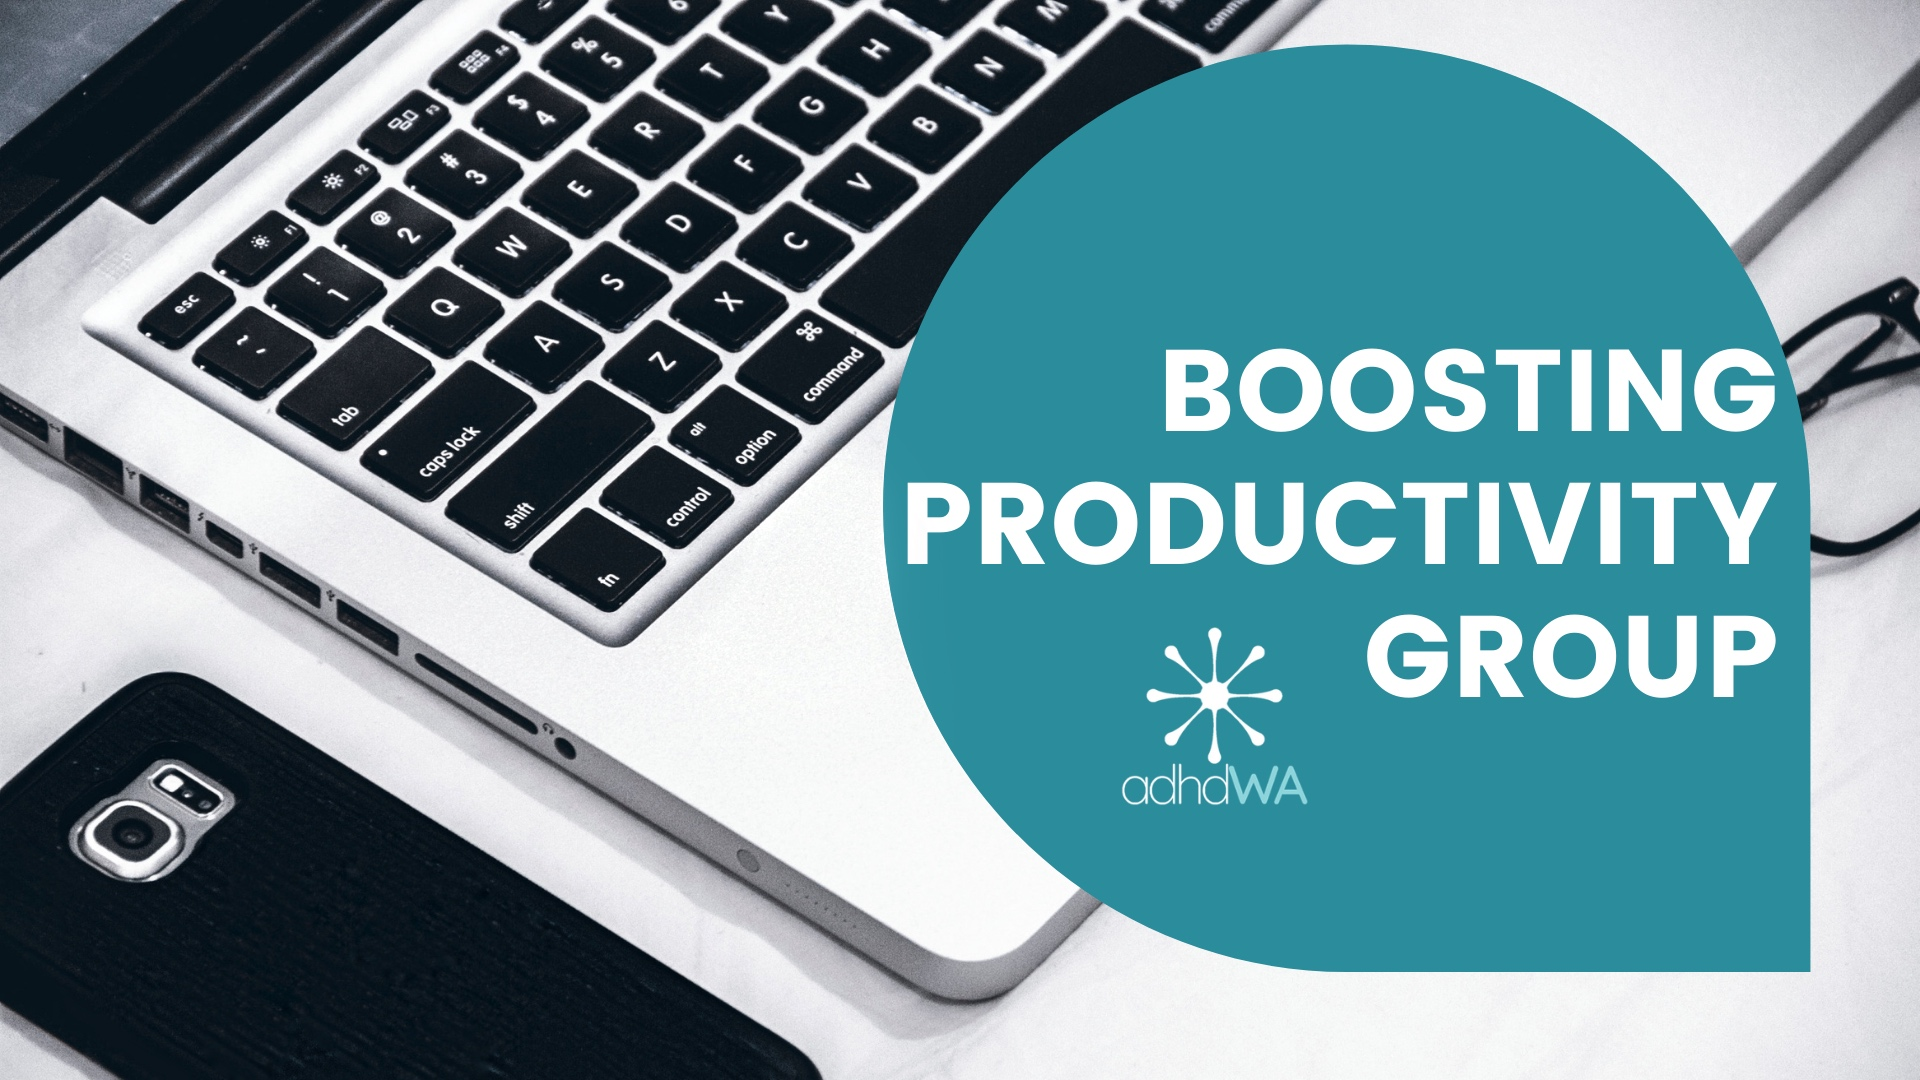 Boosting Productivity Group